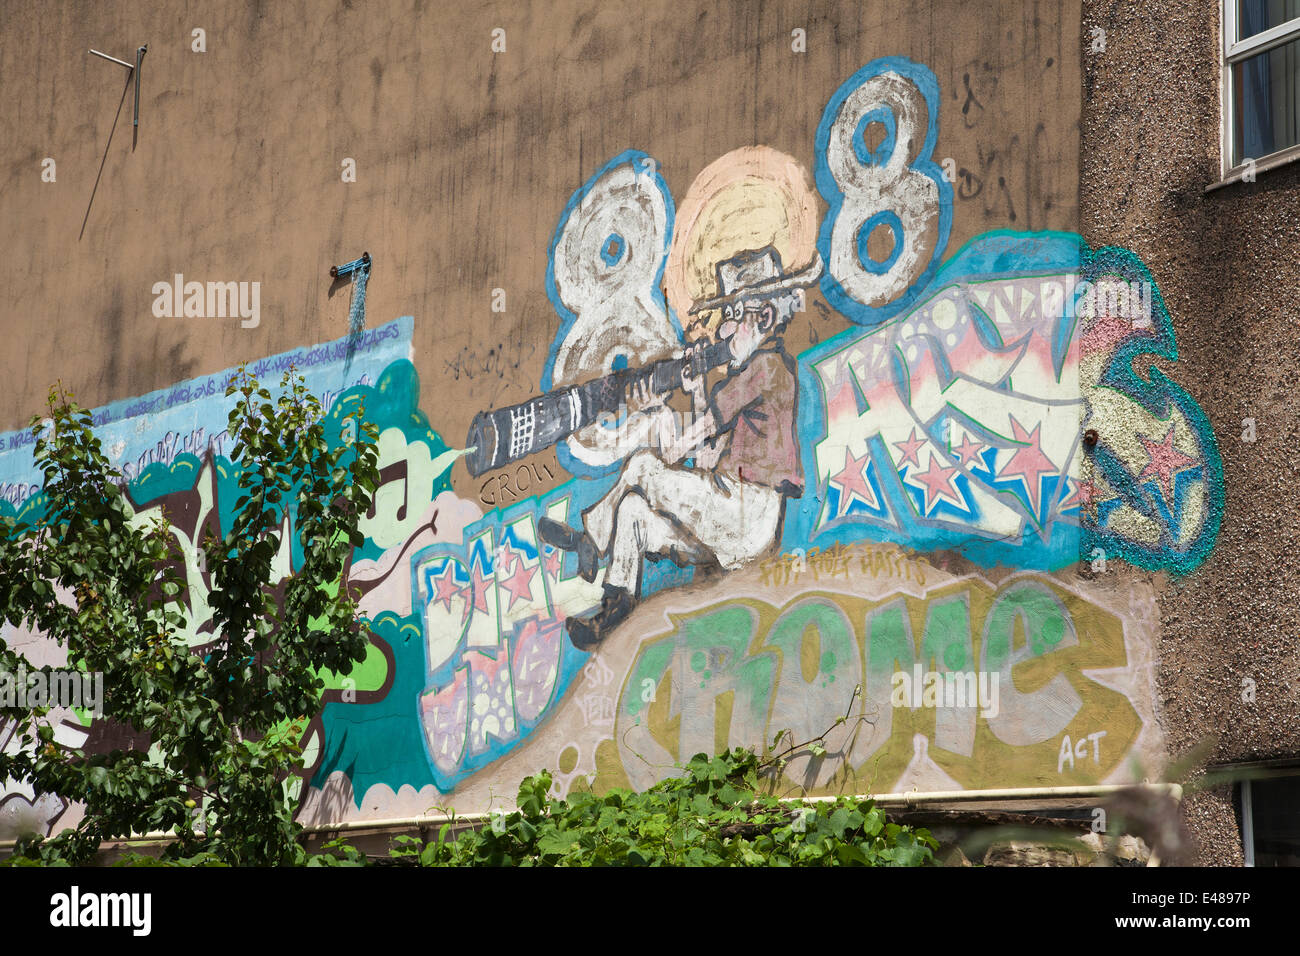 Shoreham Street, Sheffield, U.K. 5th July 2014. A mural of Rolf Harris on the Sheffield Archives building is to be painted over after the entertainer and artist was jailed for 5 years and 9 months for indecent assault. Rolf Harris painted the self portrait in the 1990's on the building in Sheffeild city centre. Credit:  Mark Richardson/Alamy Live News Stock Photo